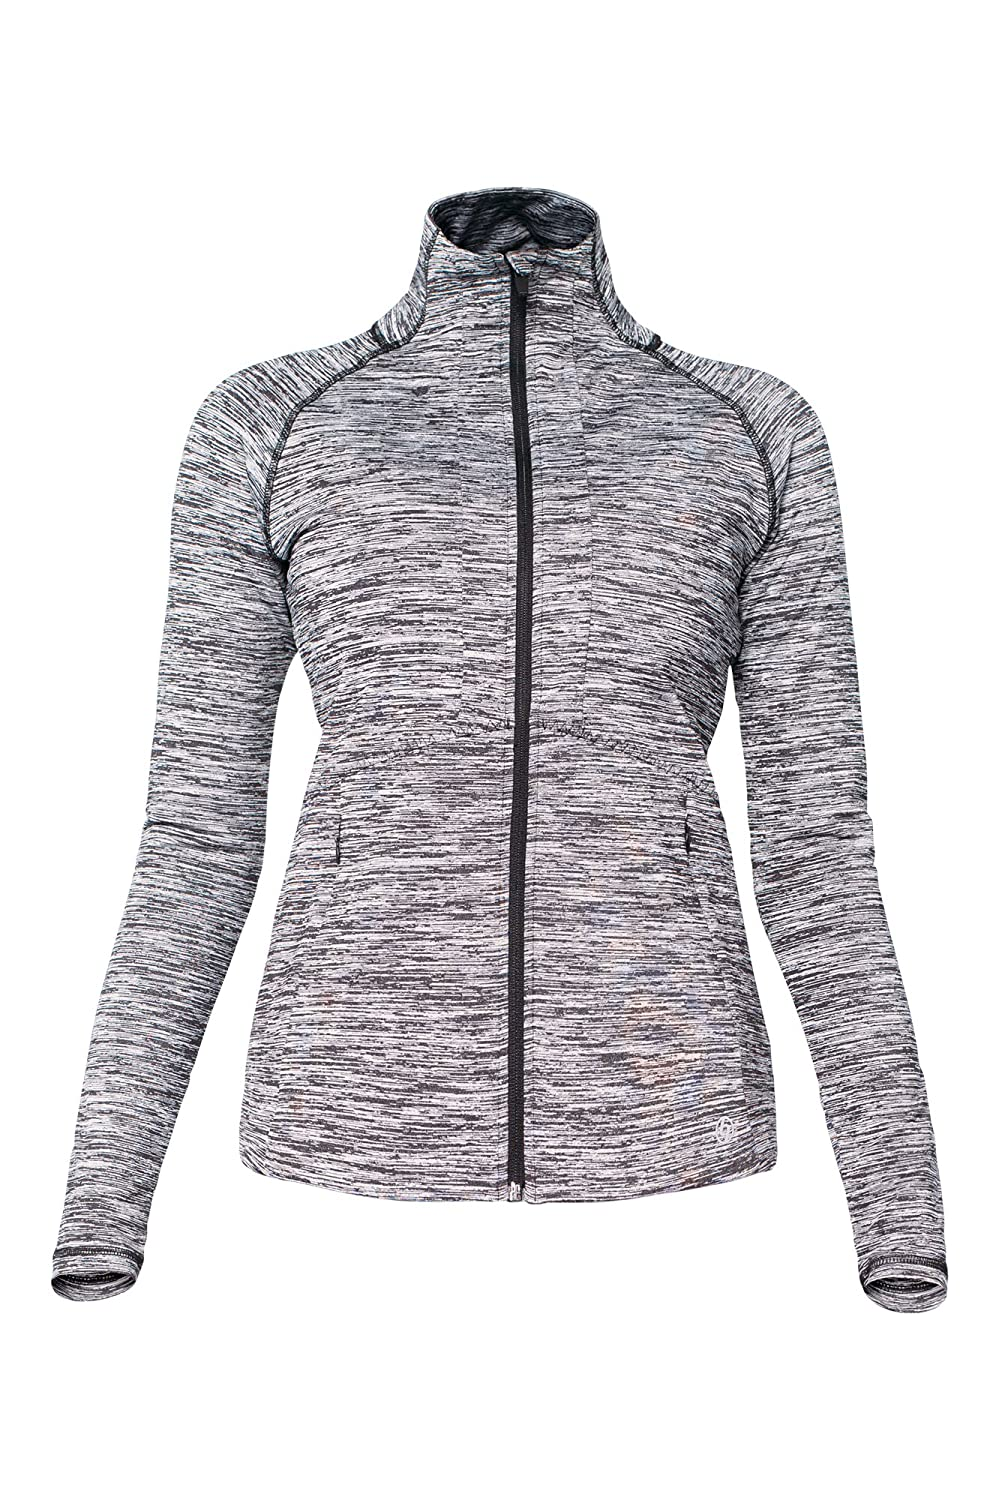 Lija Women's Trail Jacket Lija Women' s Trail Jacket